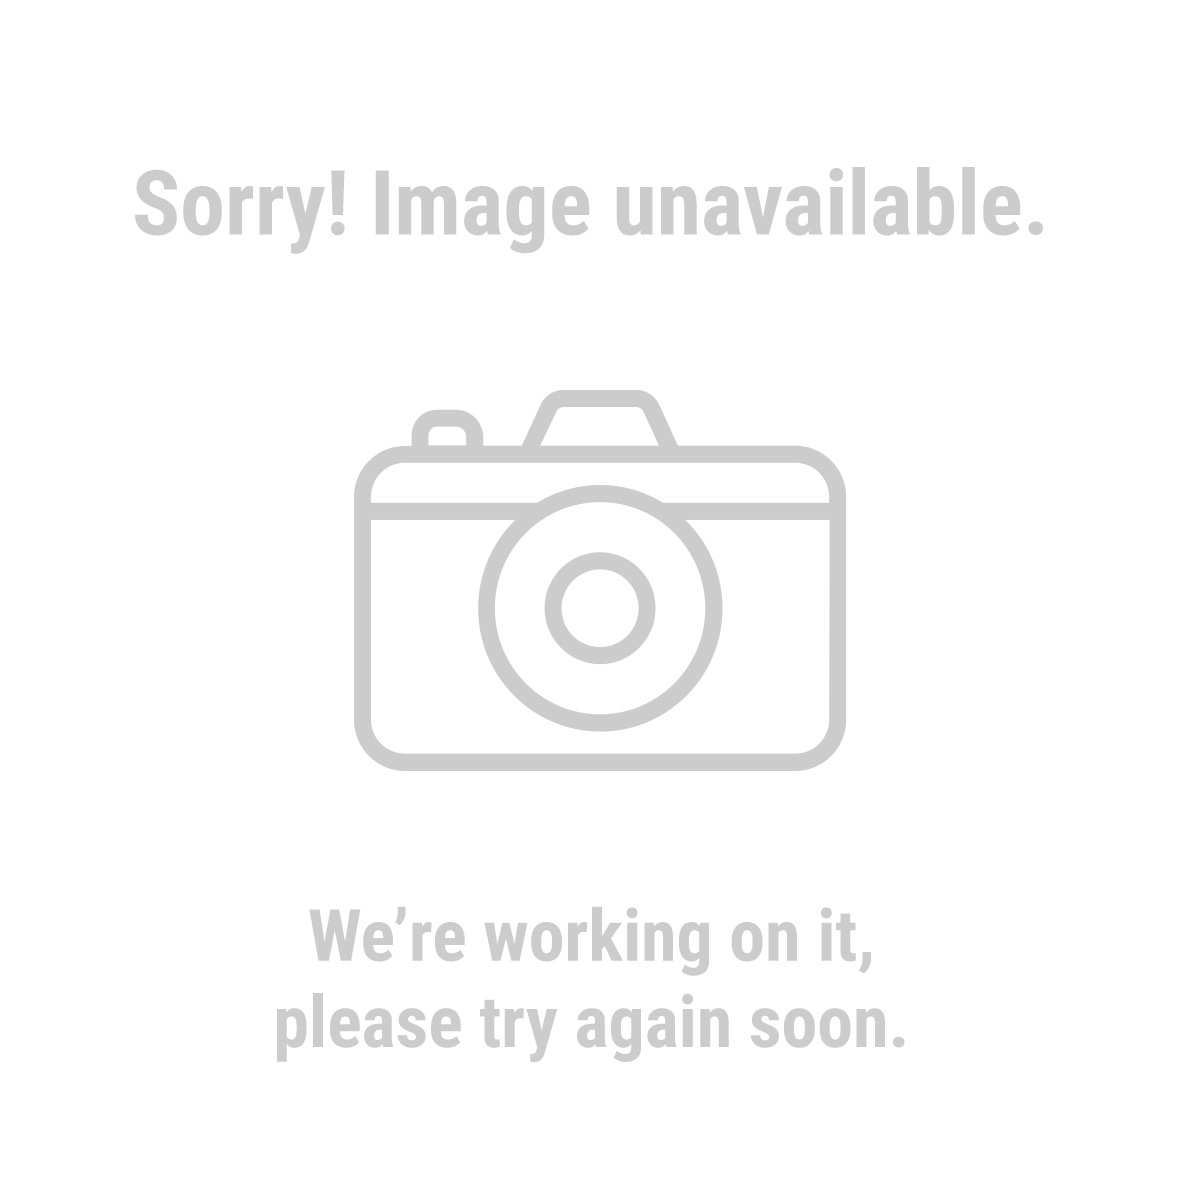 Warrior 62401 3-3/8 in., 18 Tooth Circular Saw Blade